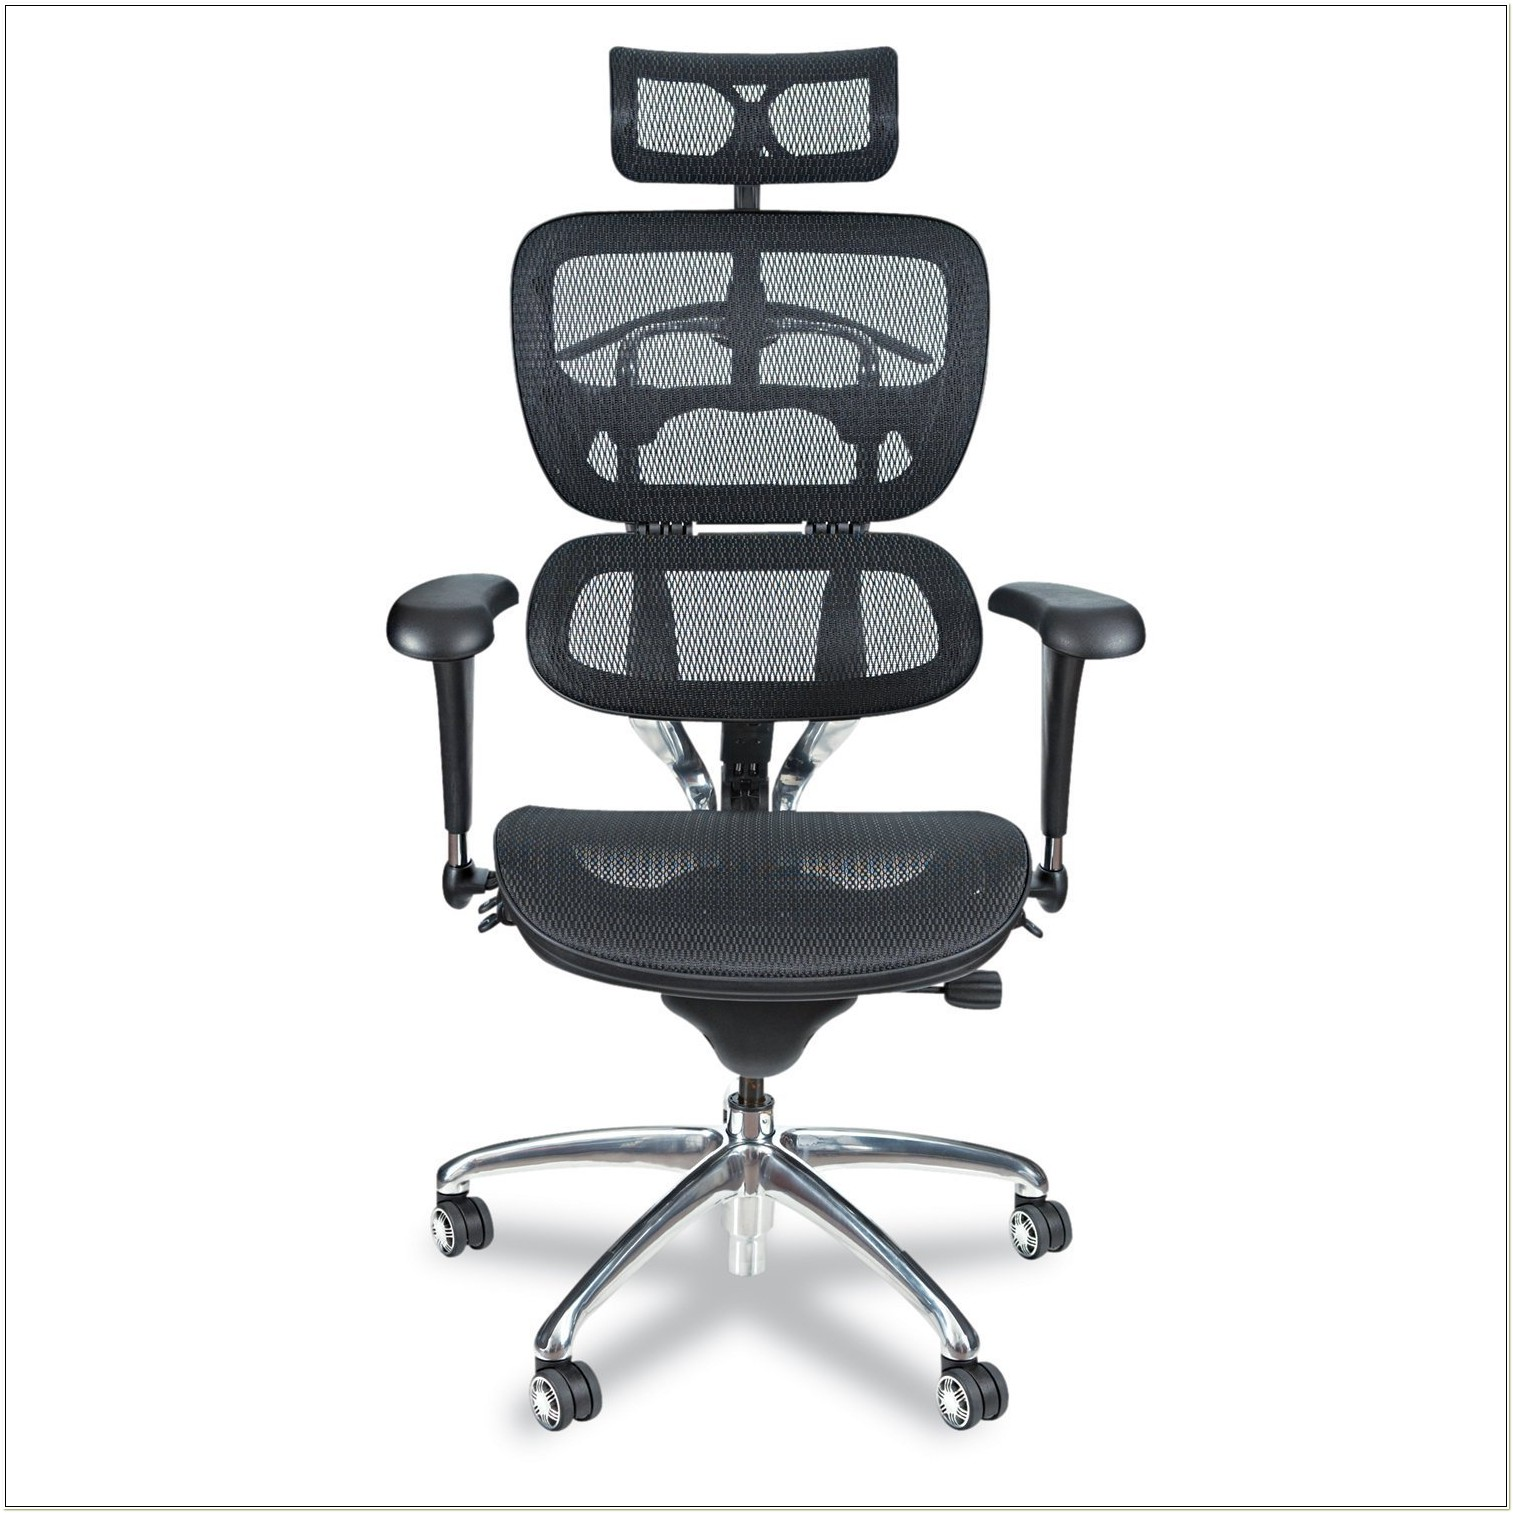 Balt Ergo Mesh Executive High Back Chair